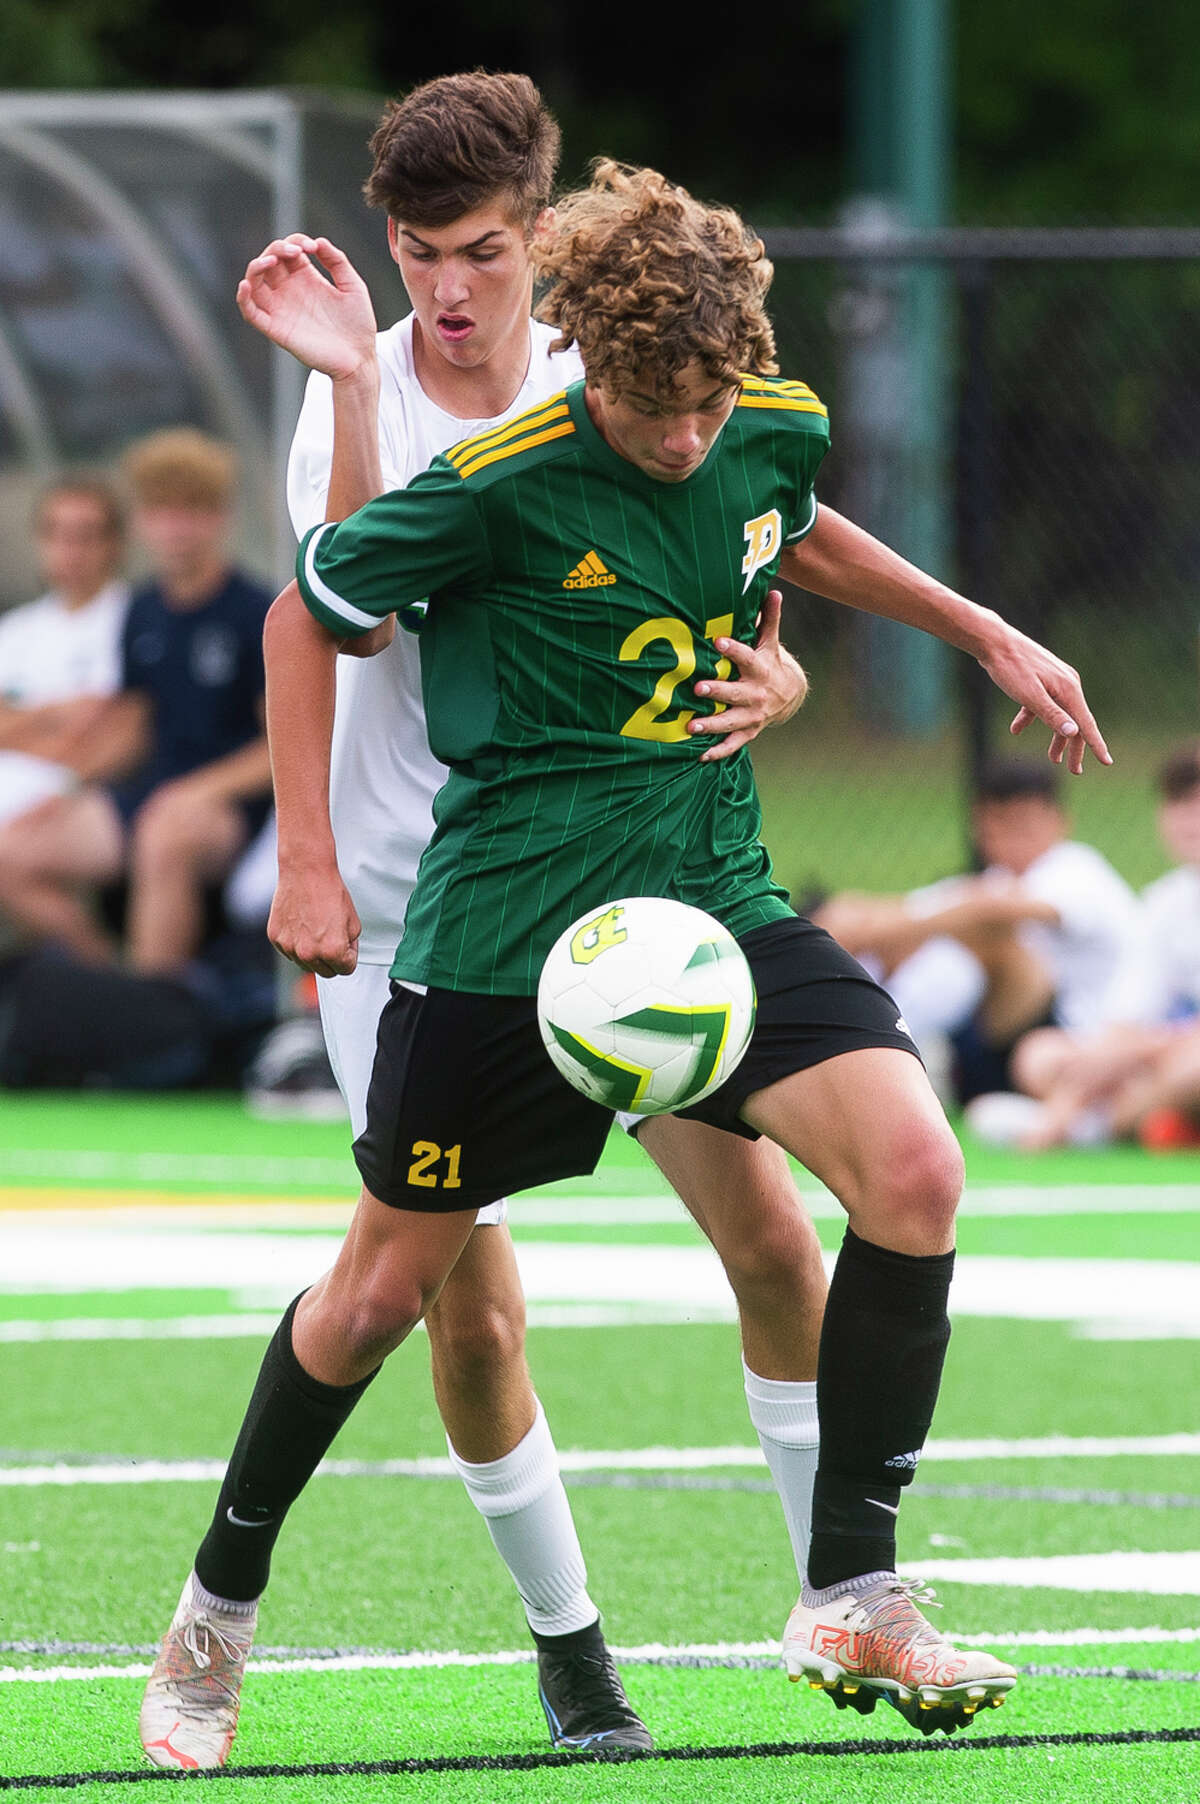 Dow's Chase Horneber dribbles down the field with pressure from an opponent during the Chargers' game against Lapeer Monday, Sept. 13, 2021 at H. H. Dow High School. (Katy Kildee/kkildee@mdn.net)